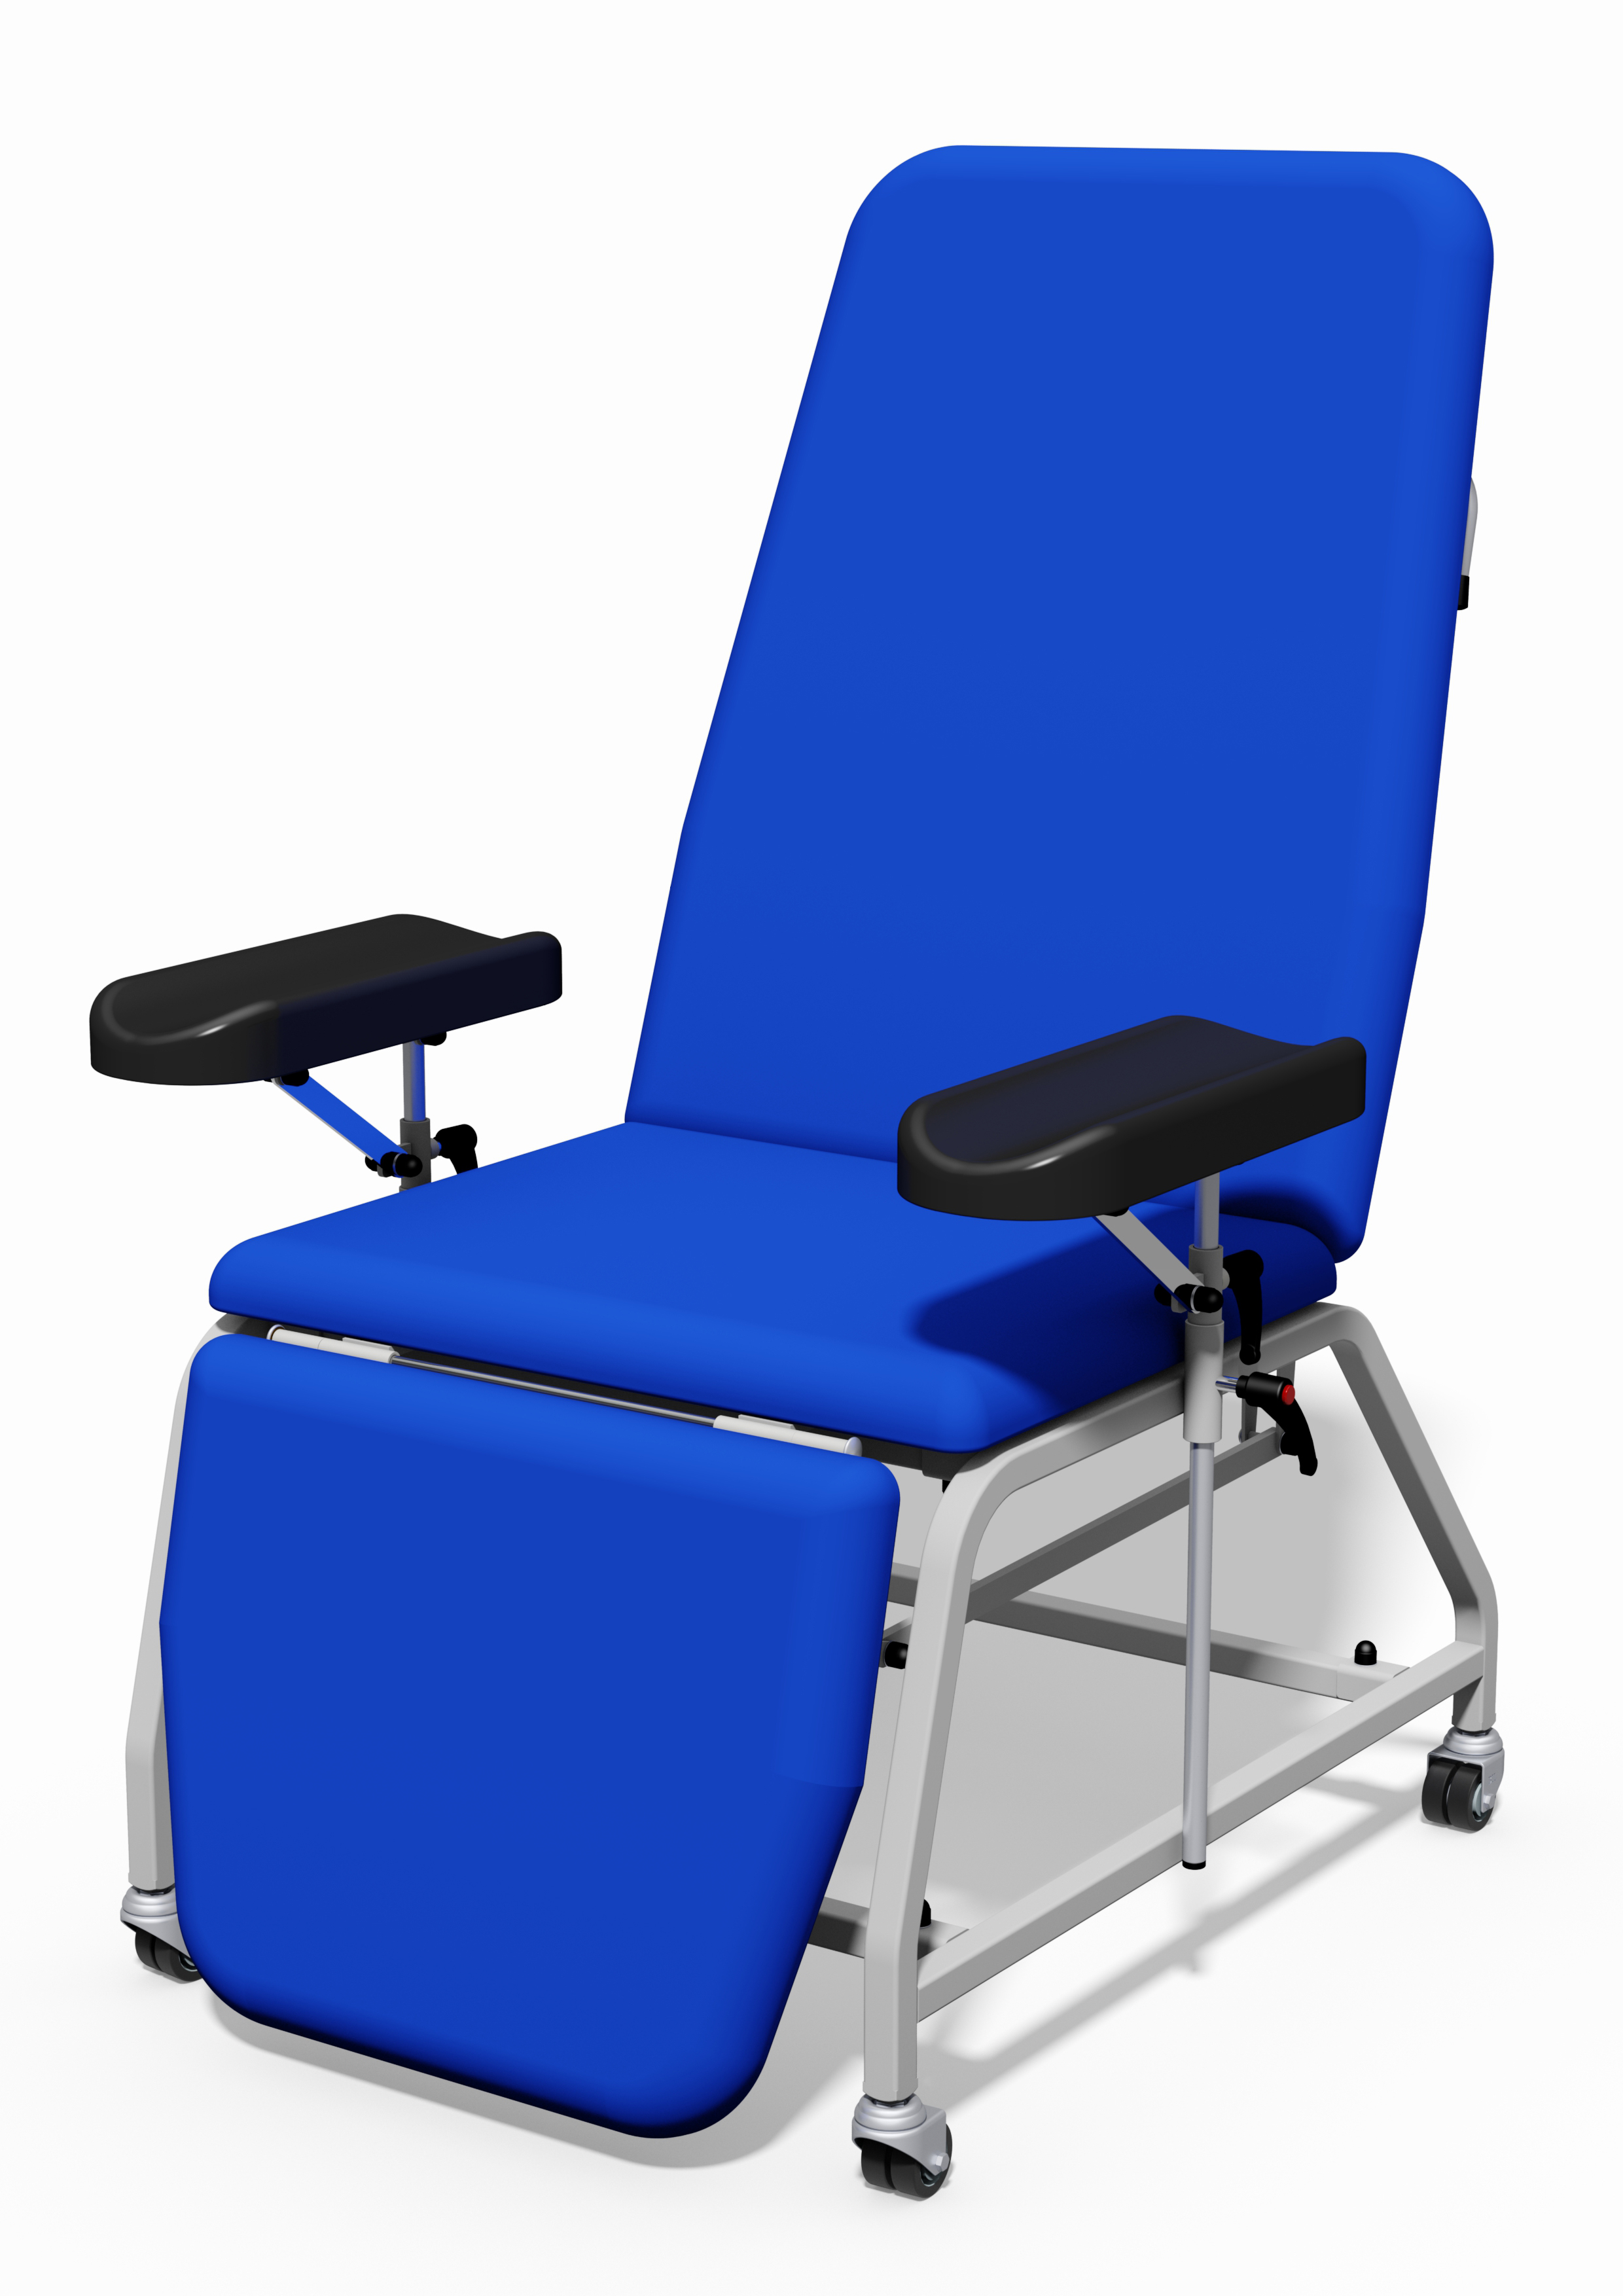 Adjustable Desk Chair Without Wheels Plinth 113b Phlebotomy Chair Without Wheels Hillcroft